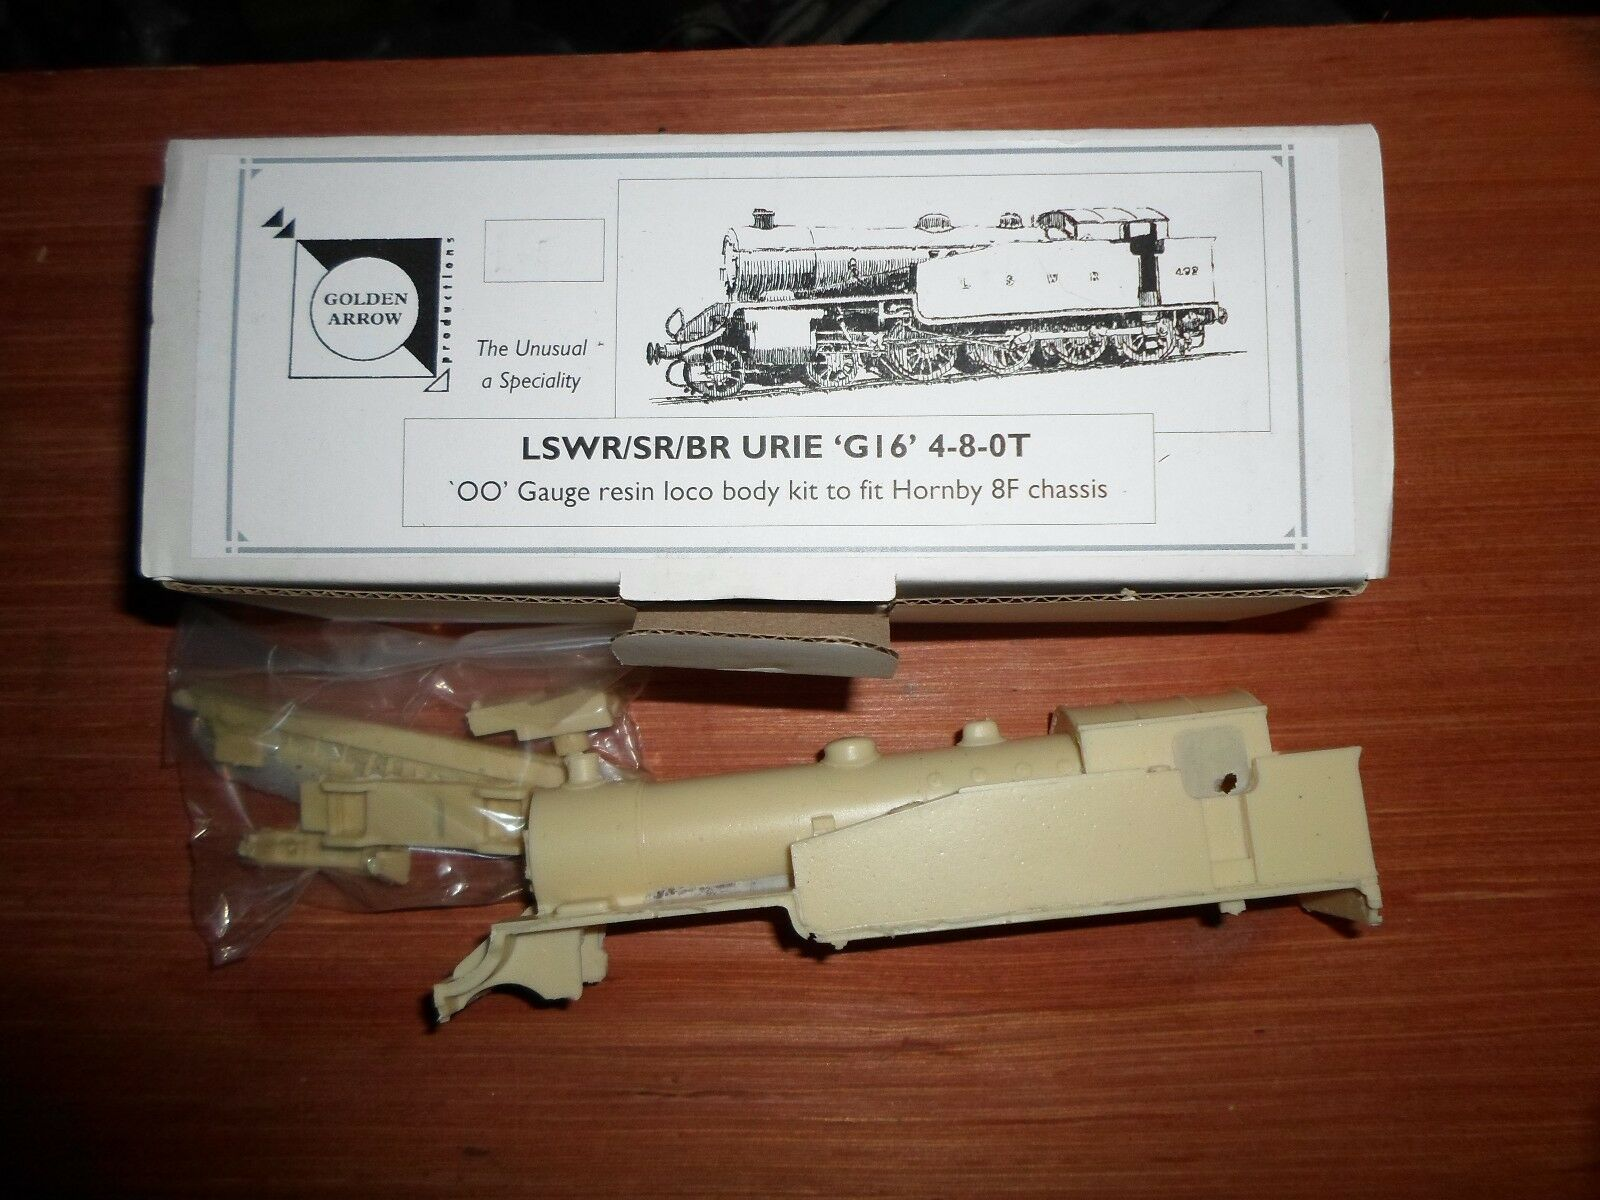 LSWRSRBR 'G16' 480T Resin corpo kit, 4mm finescale. Fits Hornby 8F chassis